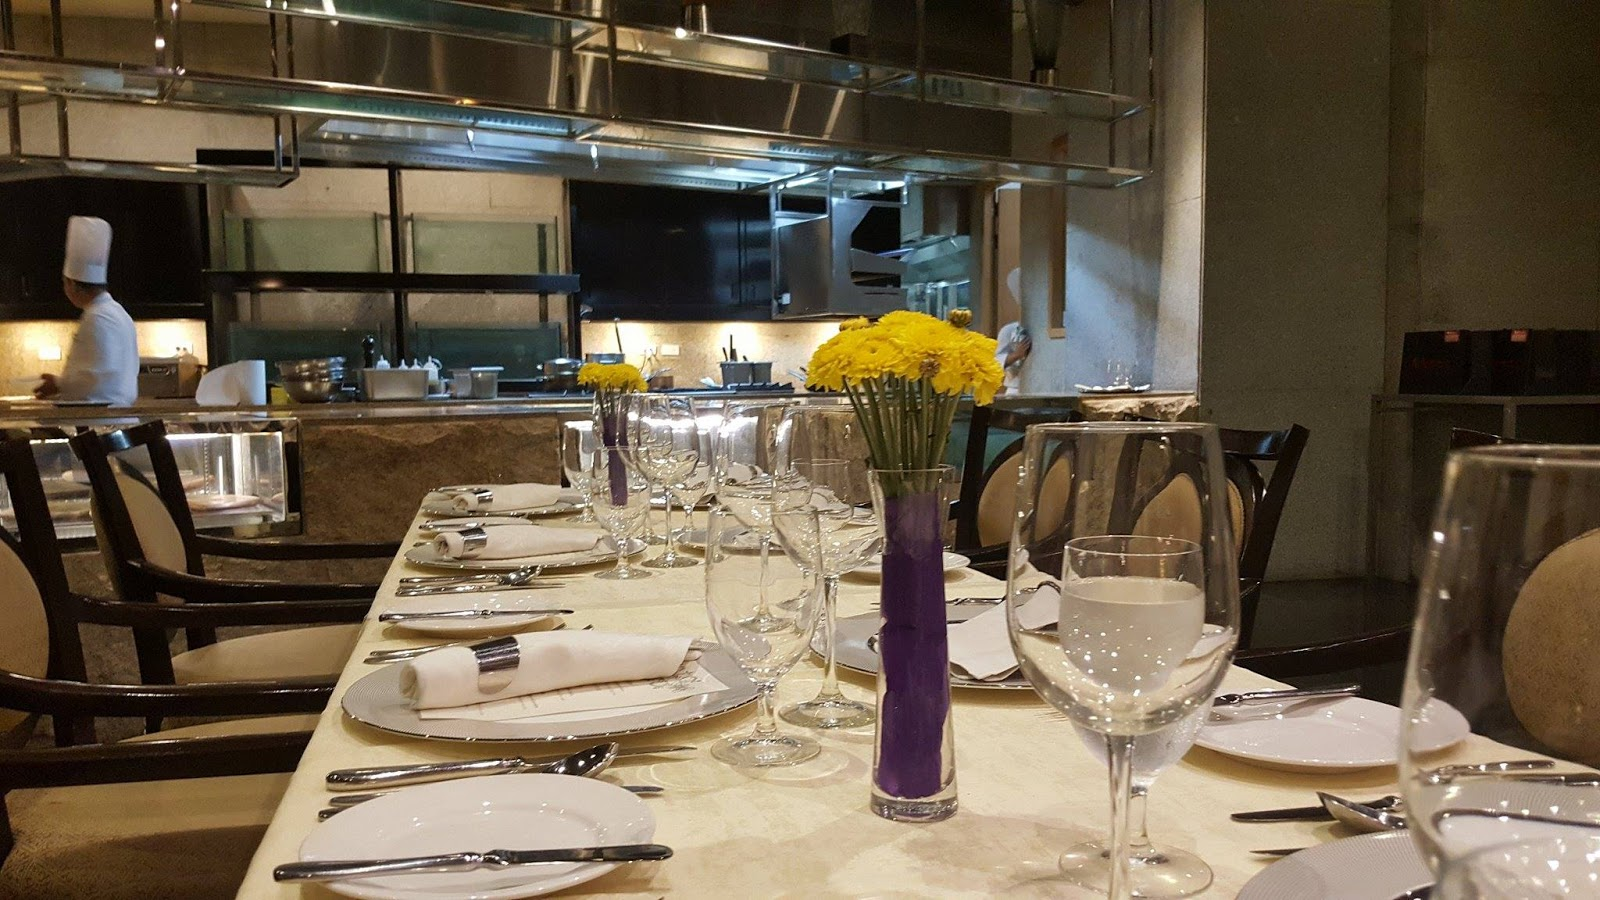 Resorts world manila presents fathers day fine dining at table setting at  impressions french fine diningFrench Fine Dining Table Set Up Gallery   Home Ideas For your Home. French Fine Dining Table Set Up. Home Design Ideas